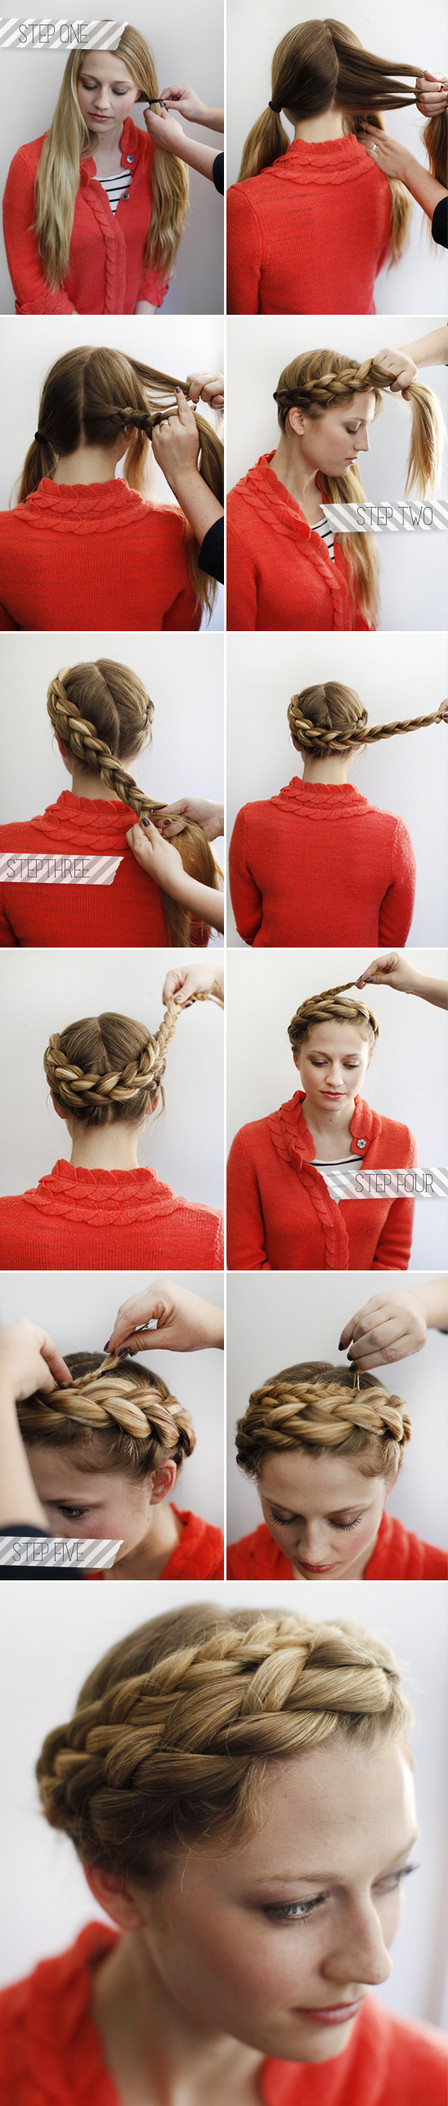 The 6 Best Braid Tutorials To Up Your Summer Hair Game